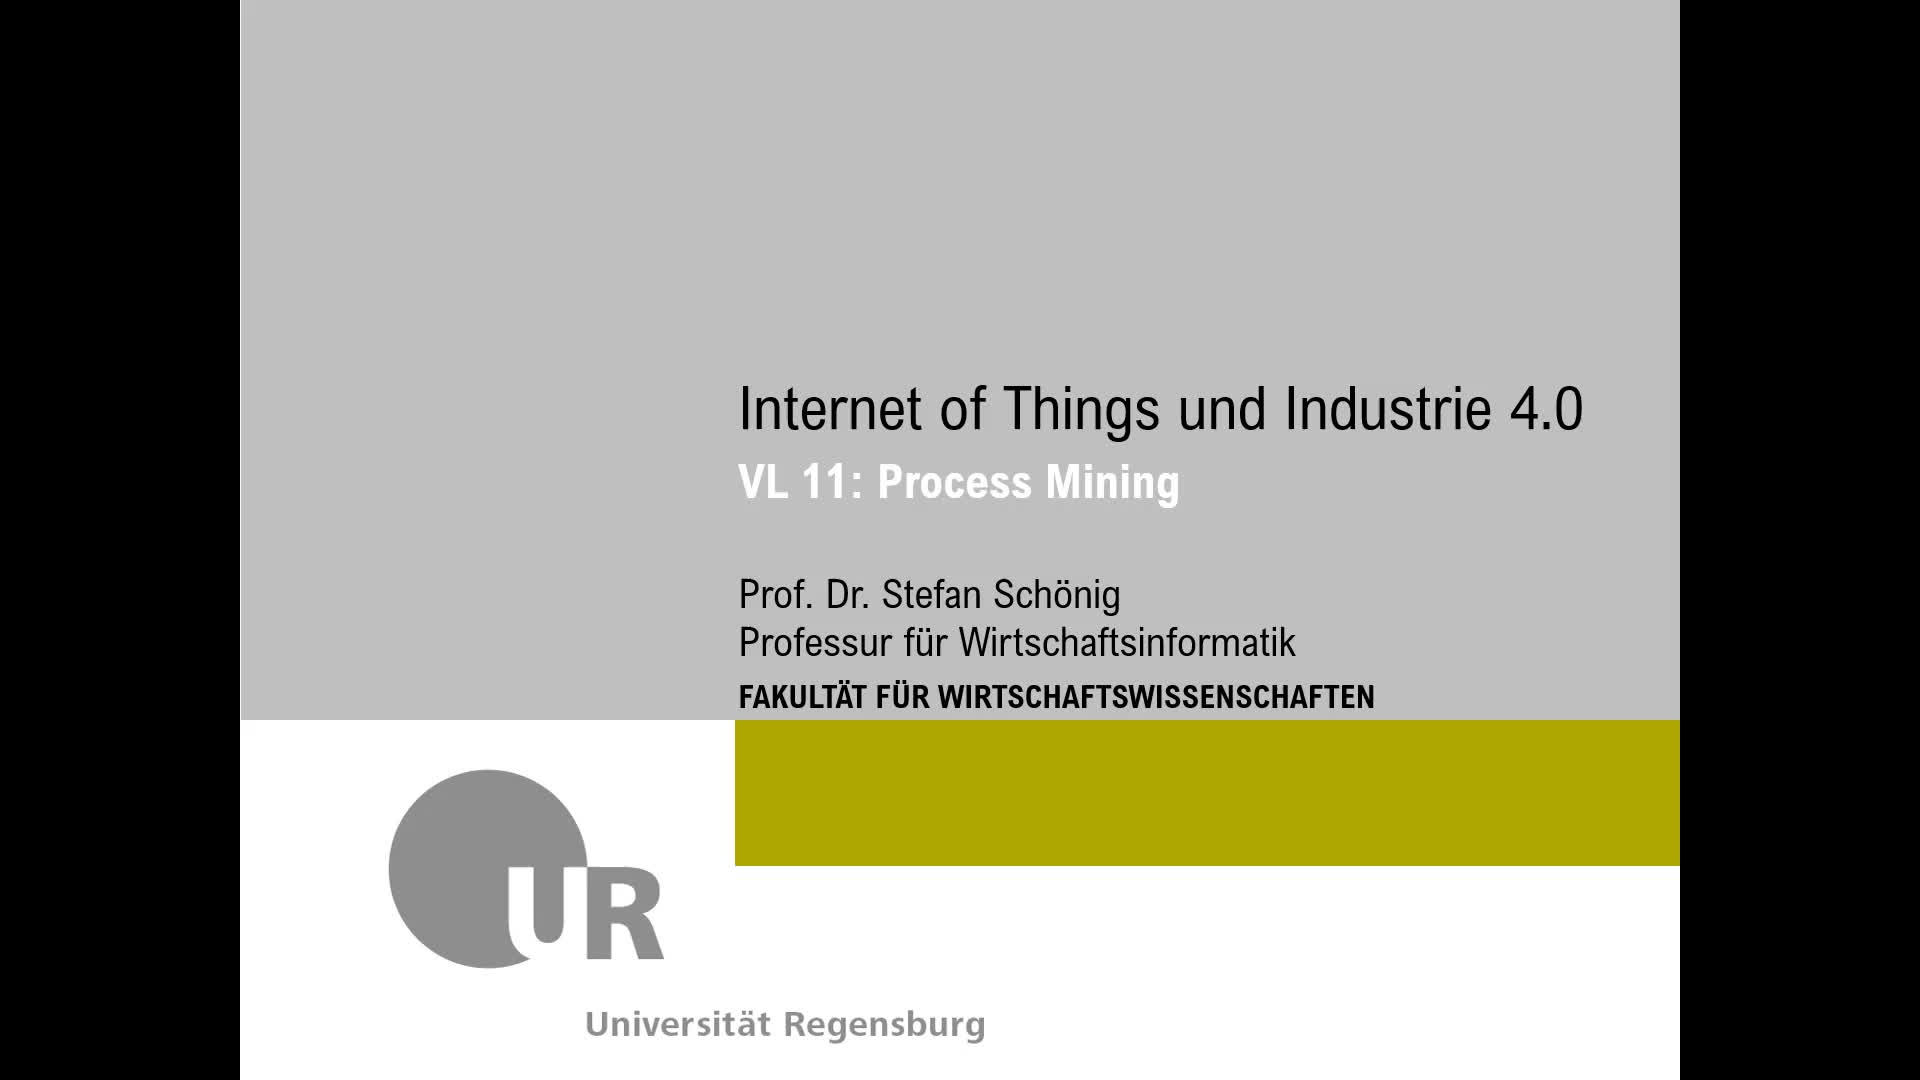 SS 2020 - Internet of Things und Industrie 4.0 - Kapitel 11 (Process Mining)